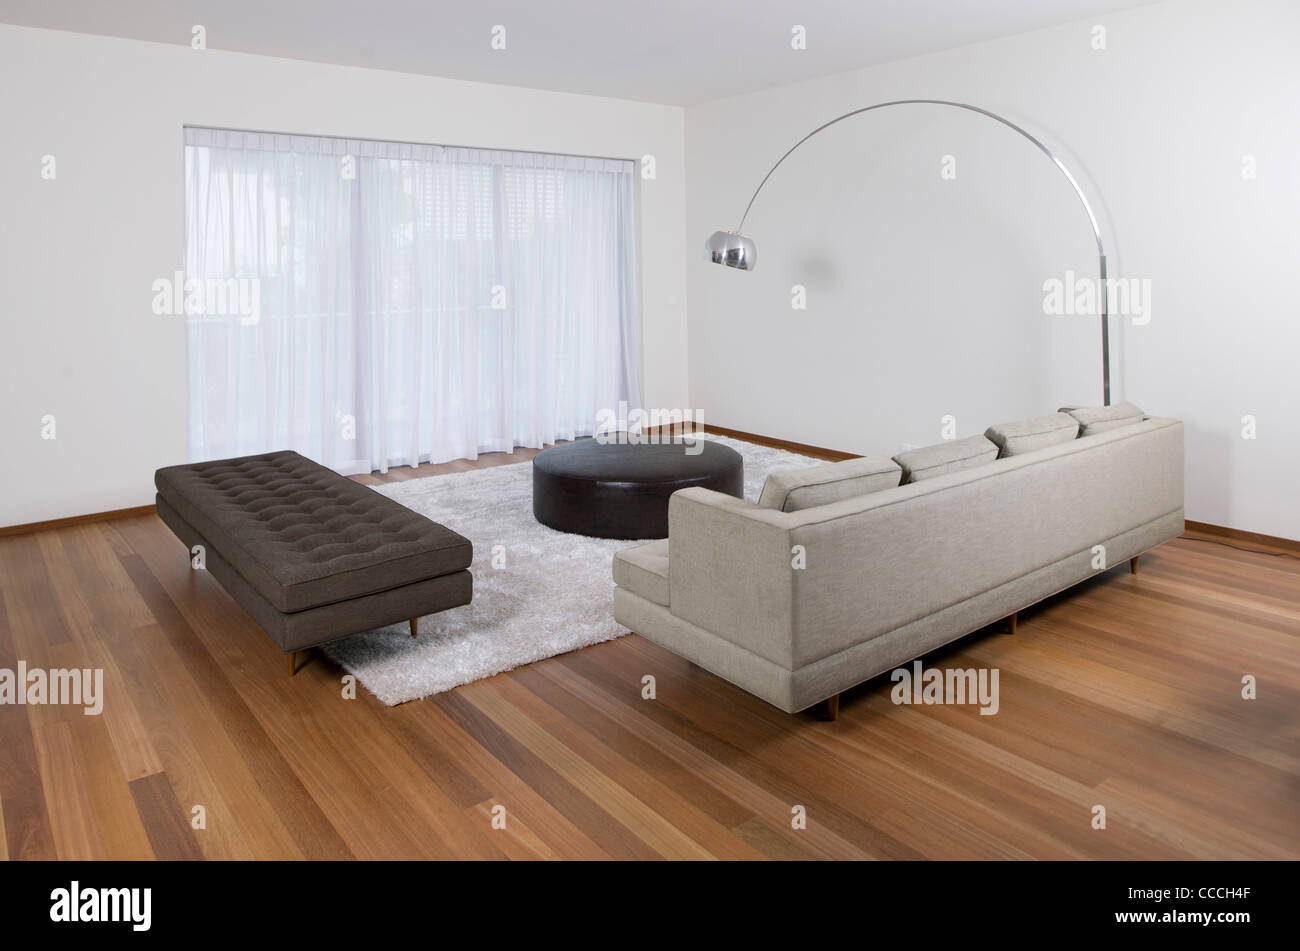 Interior Hijau Interior Of Apartment At Iringan Hijau Stock Photo 42073487 Alamy